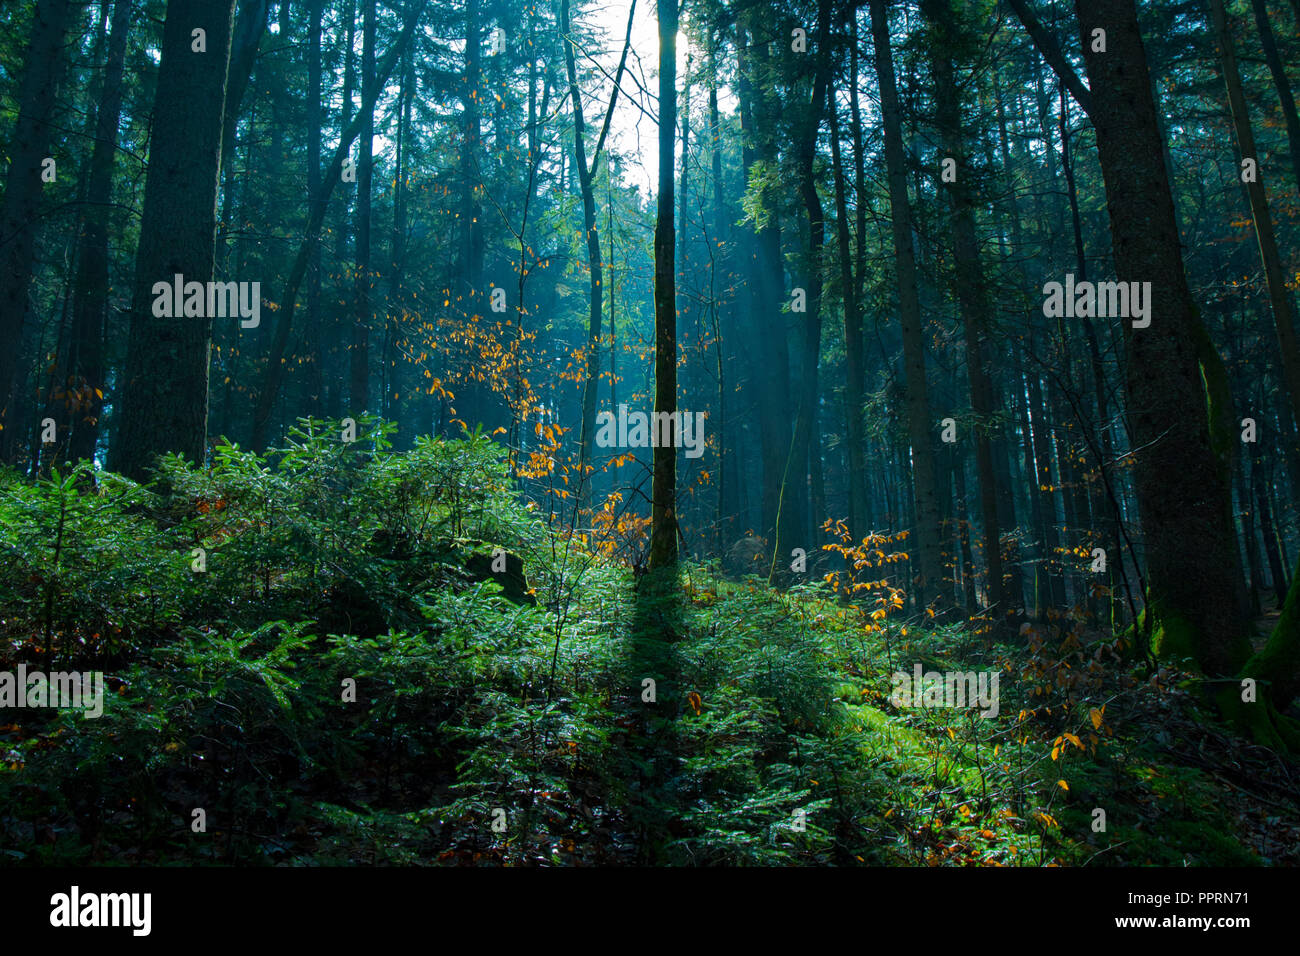 Lightshow in the forest - Stock Image